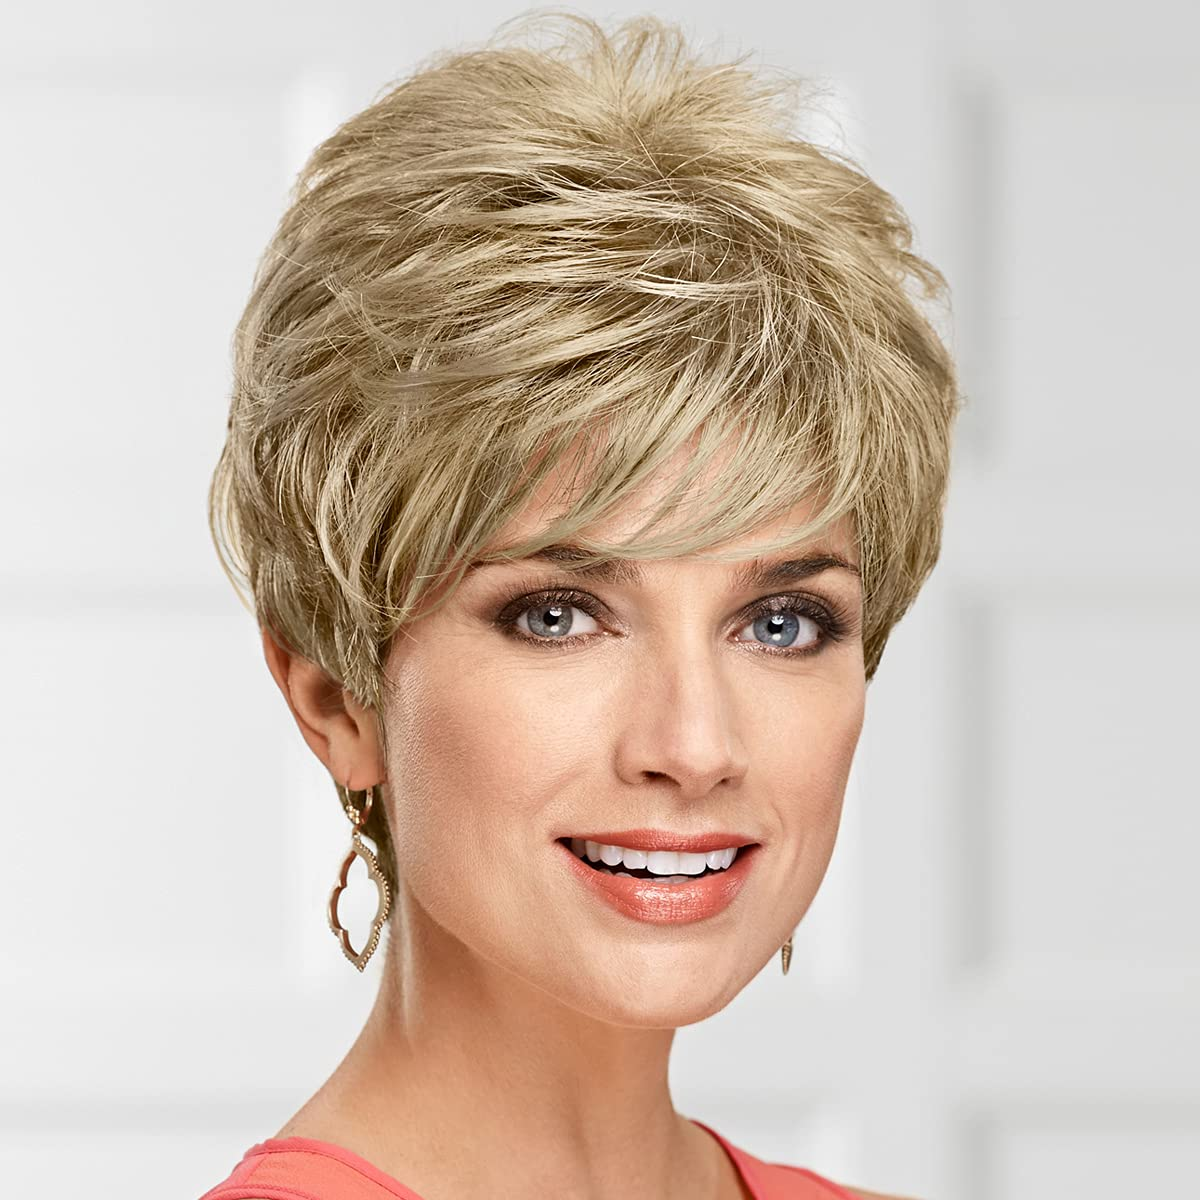 New mail order Lauren WhisperLite Wig by Fees free Paula Young Short Pixie Spirited - Wi